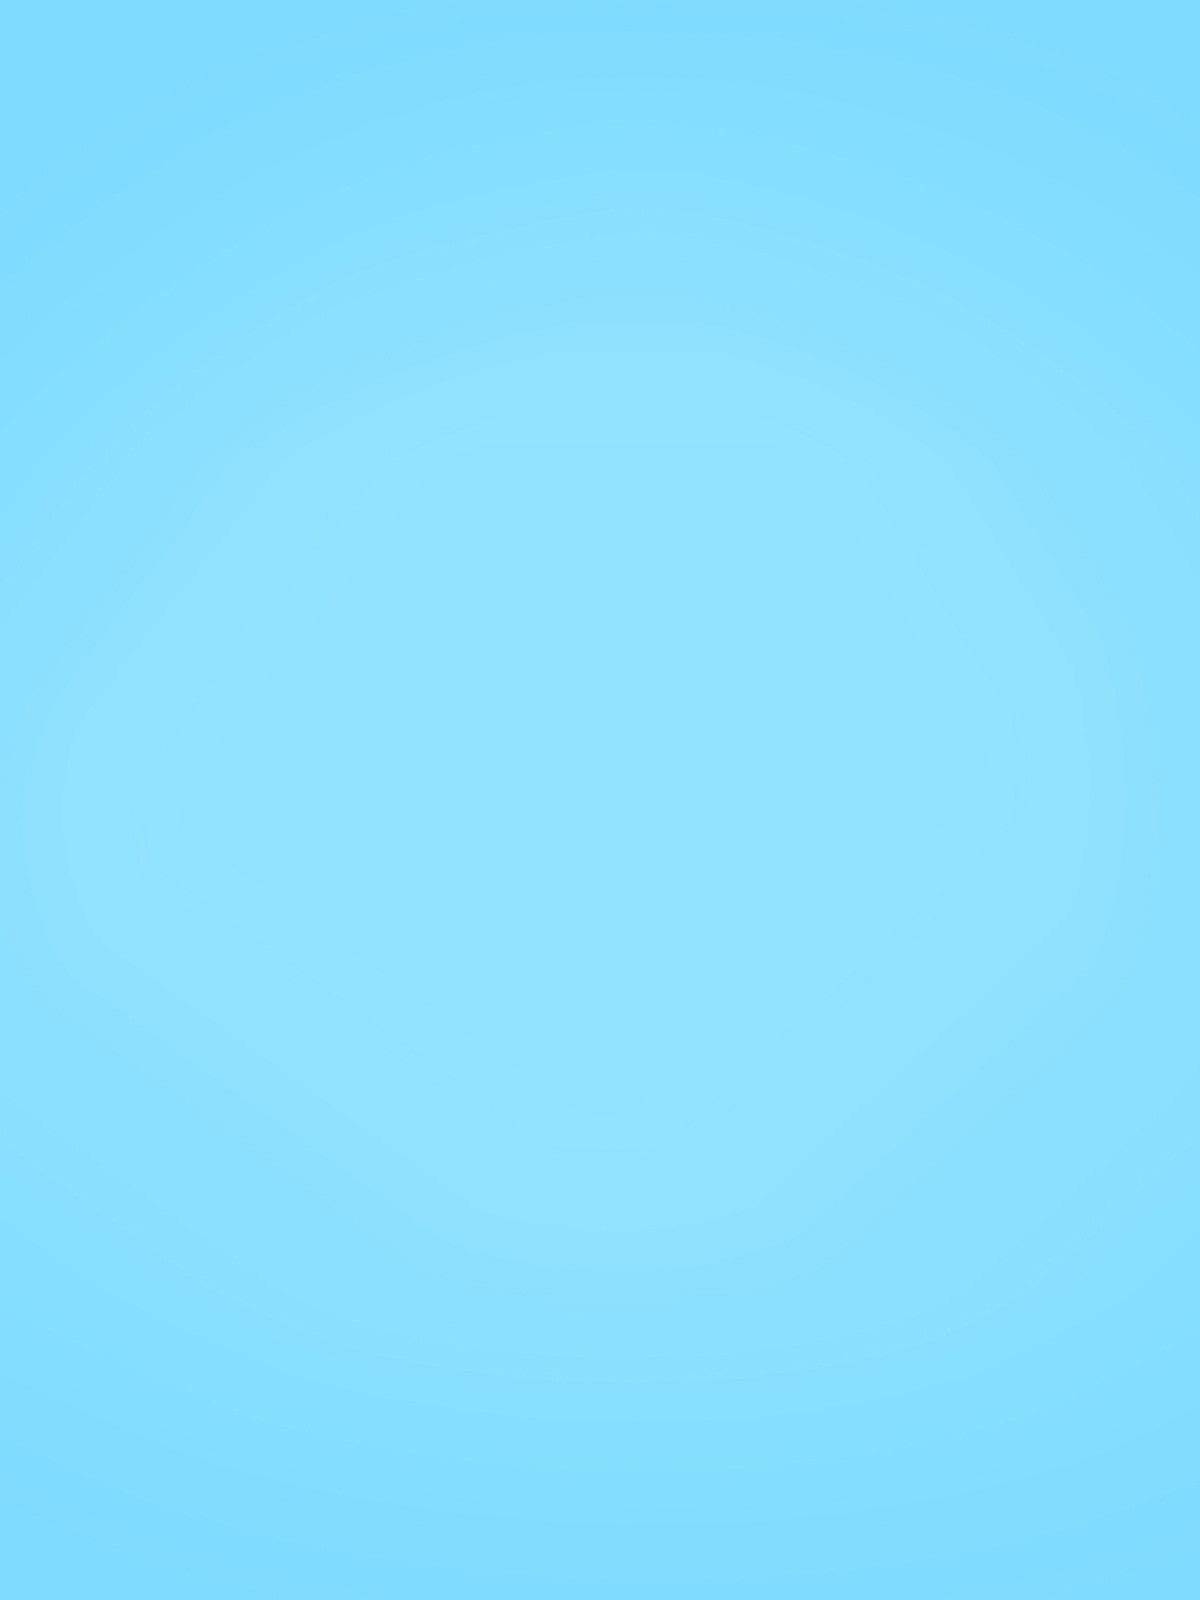 Light Blue Solid Printed Photography Background / 9101 - DropPlace